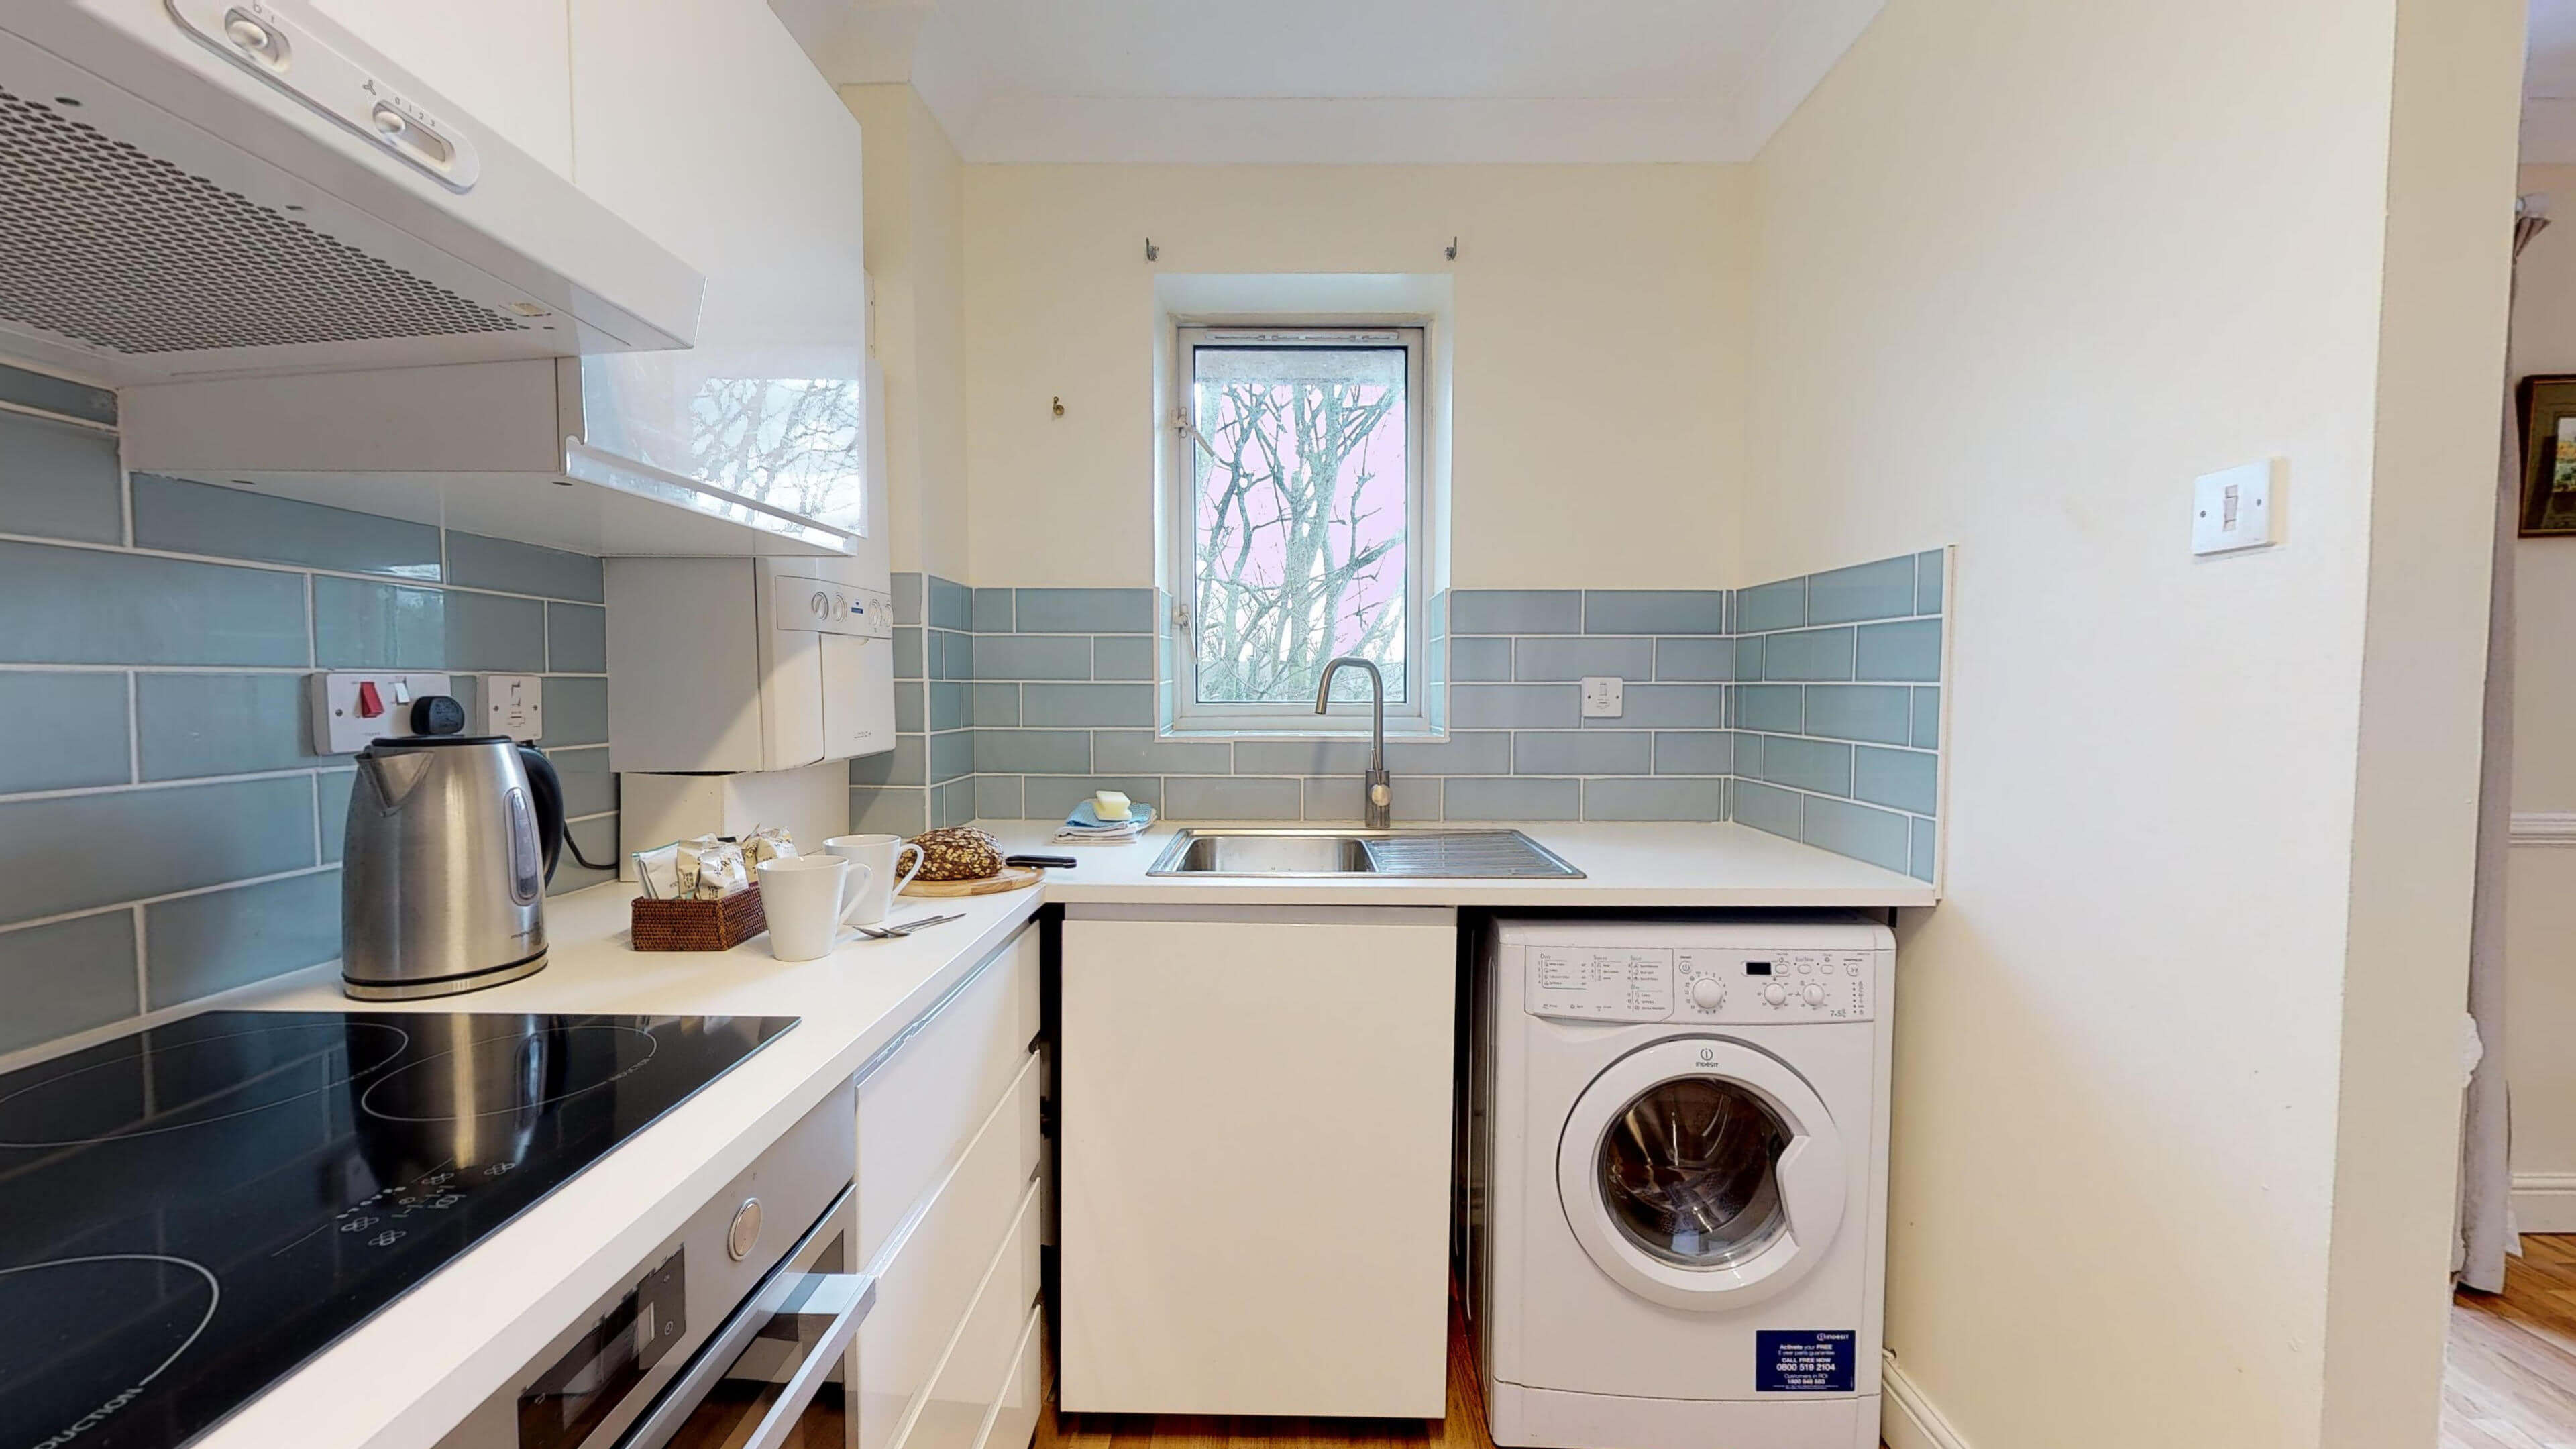 Millbank Oxford City Centre Short Stay Apartment Sleeps 4 Kitchen Inside